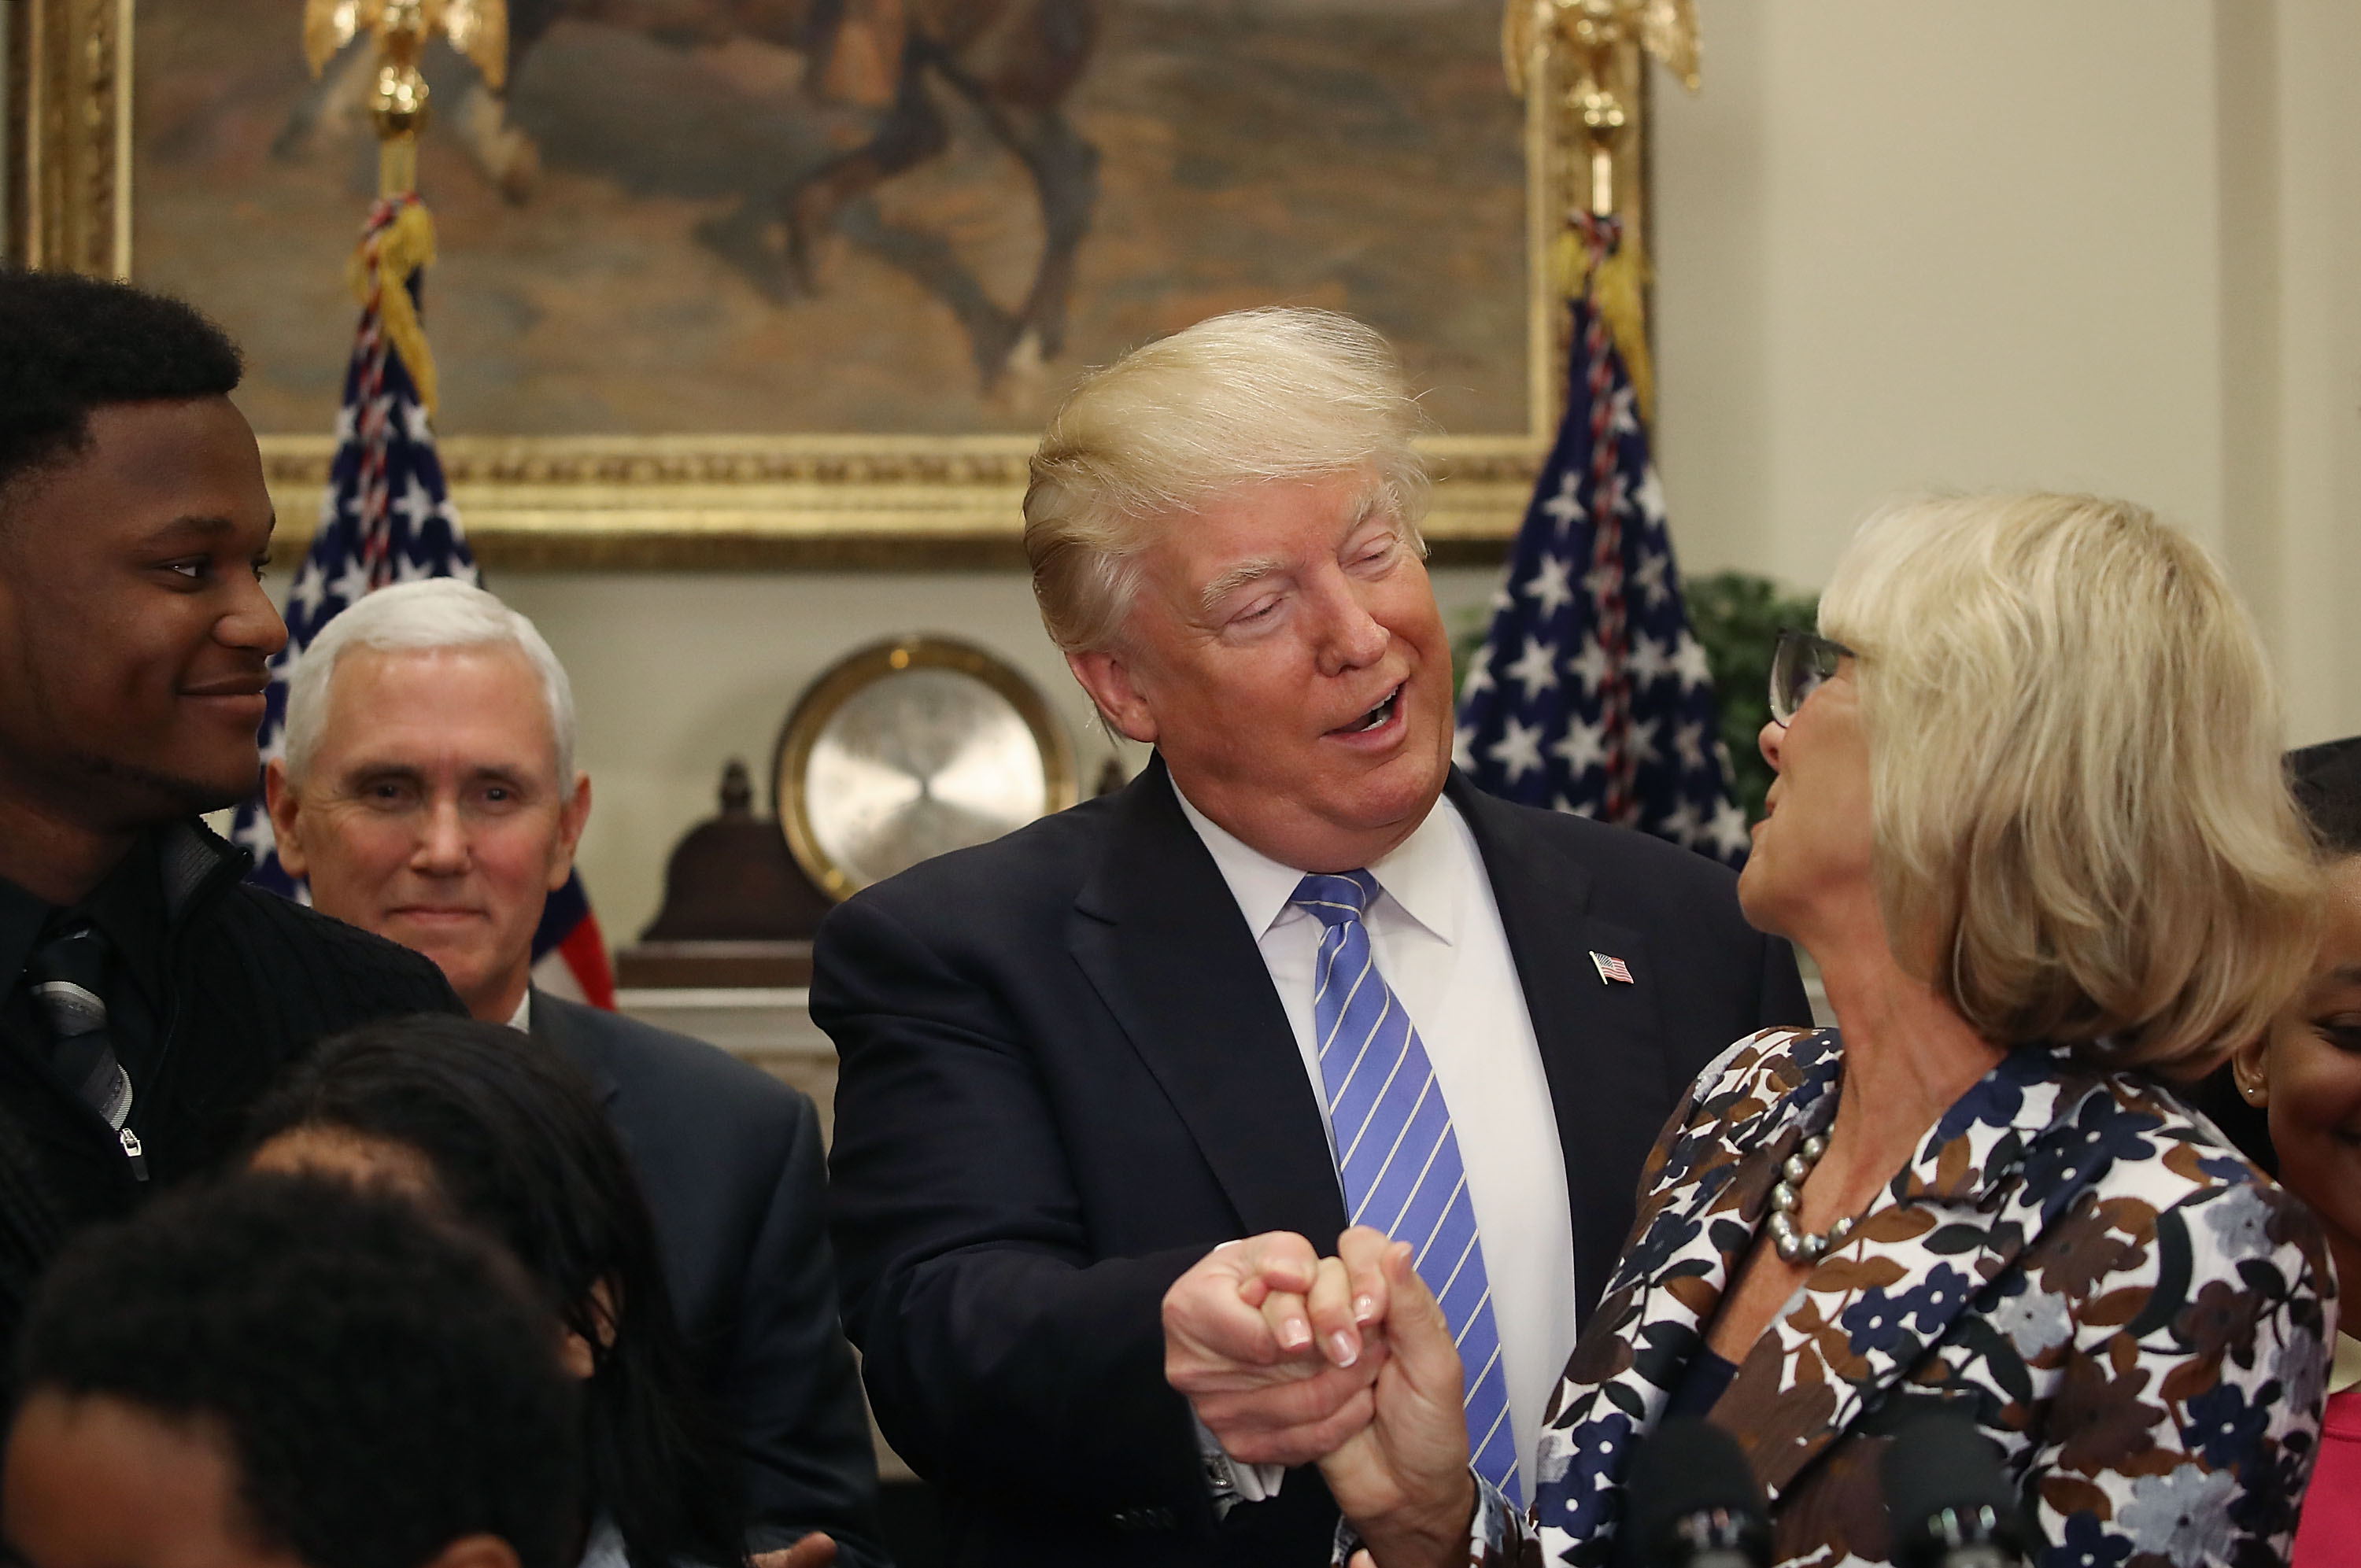 Trump And Pence Join Betsy DeVos At School Choice Event At White House